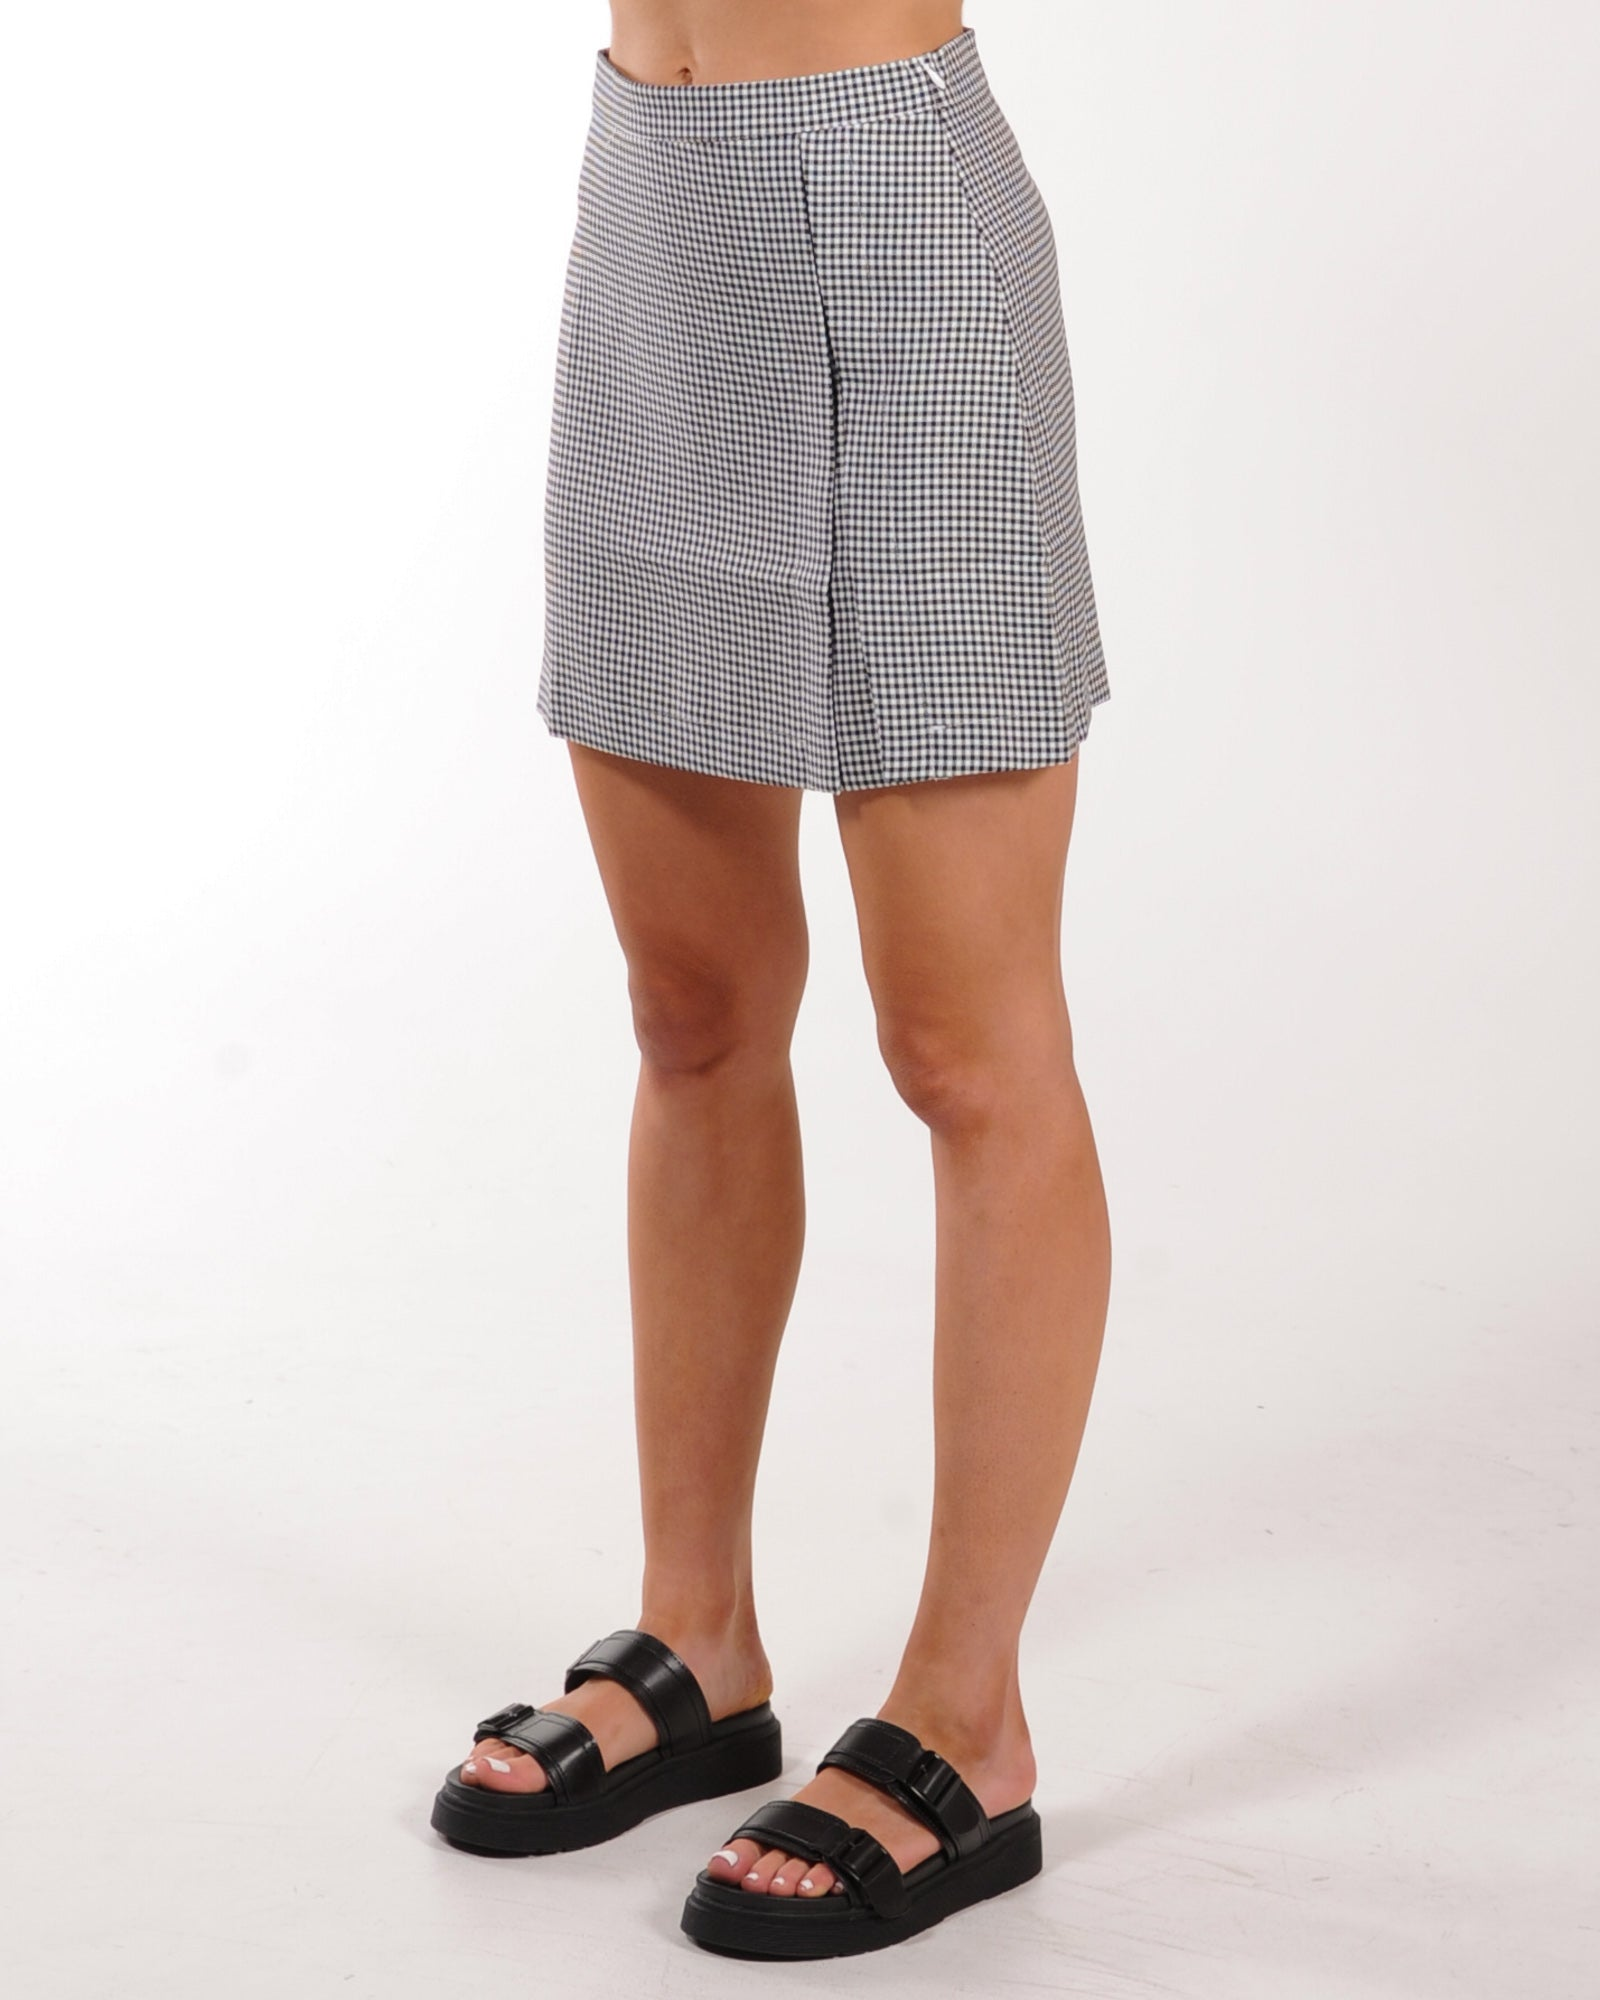 Schoolies Mini Skirt - Black Check